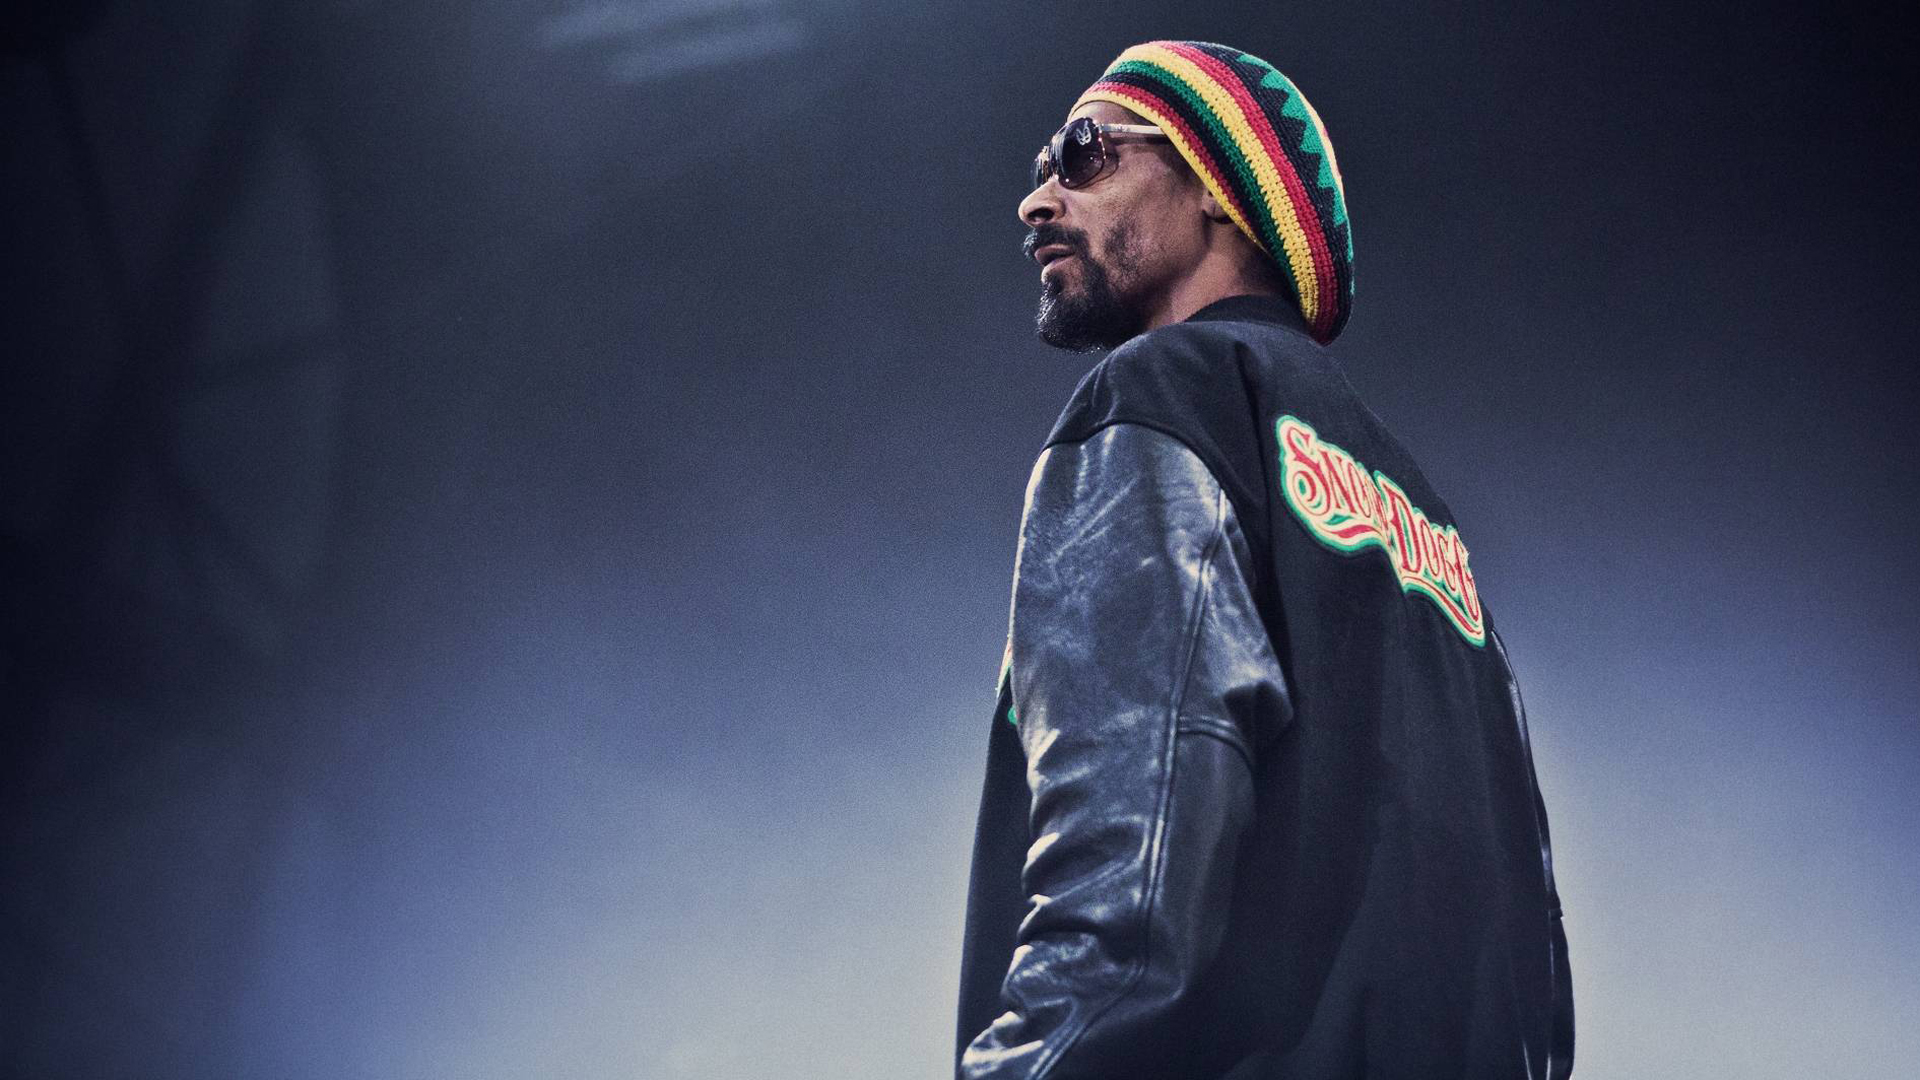 snoop dogg celebrity desktop wallpaper 62586